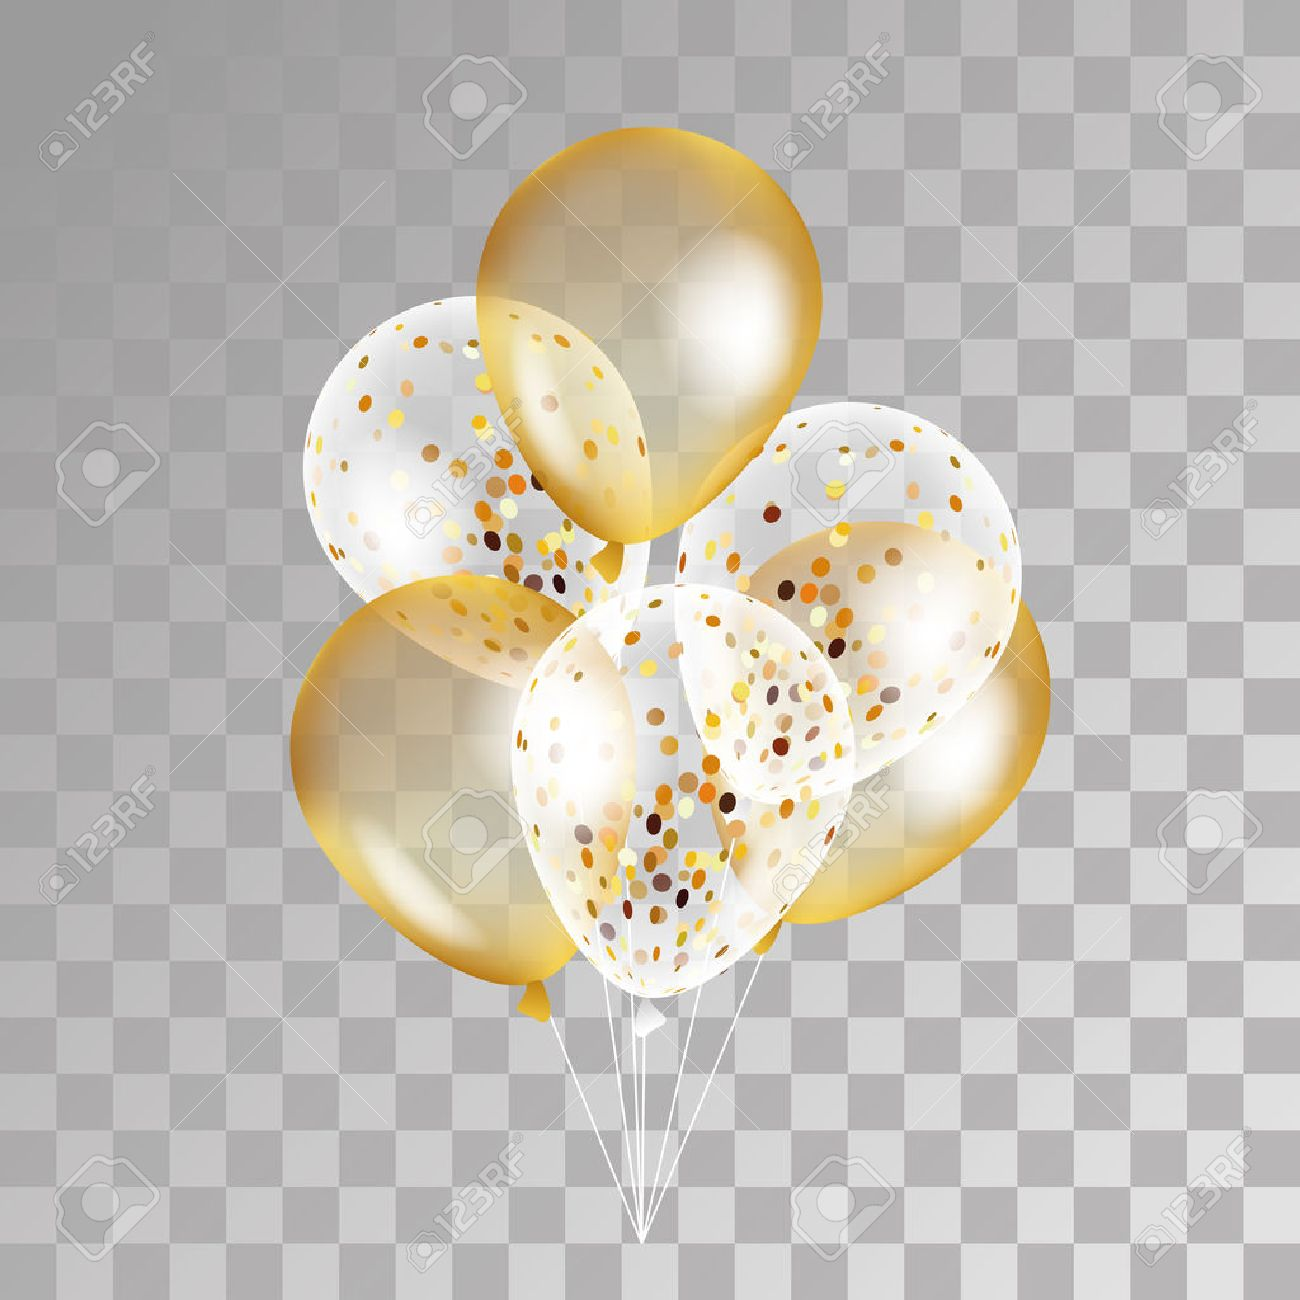 Gold transparent balloon on background. Frosted party balloons for event design. Balloons isolated in the air. Party decorations for birthday, anniversary, celebration. Shine transparent balloon. - 63415800